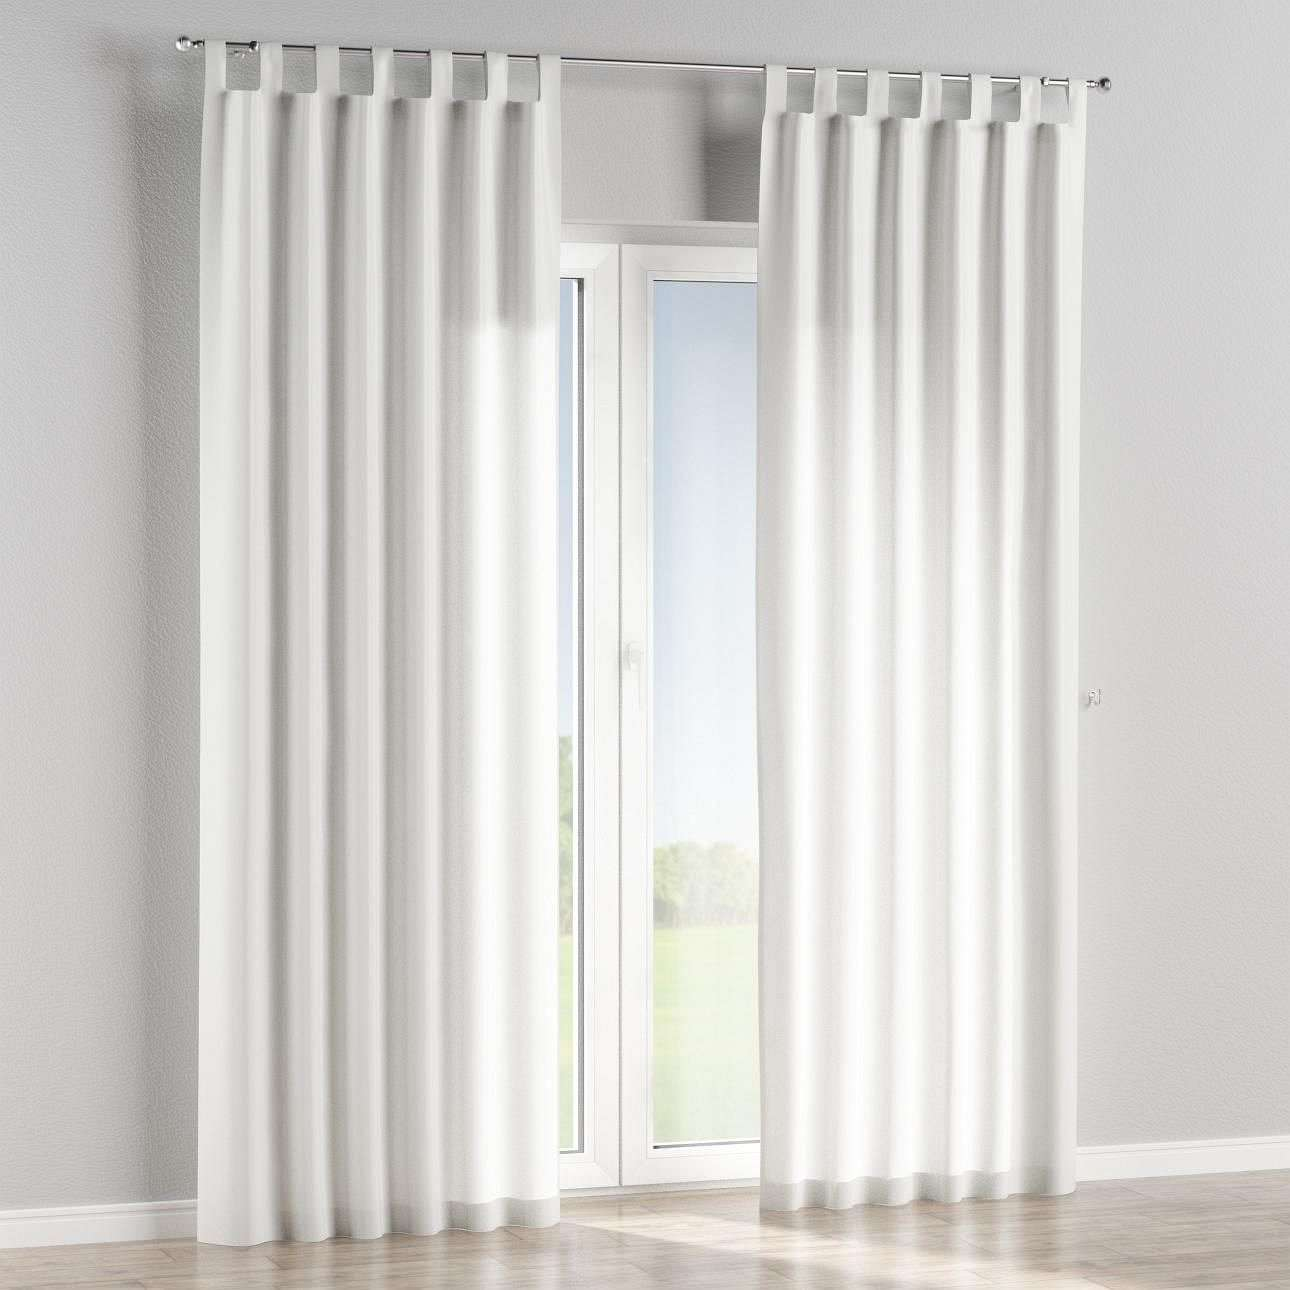 Tab top curtains in collection Milano, fabric: 150-26